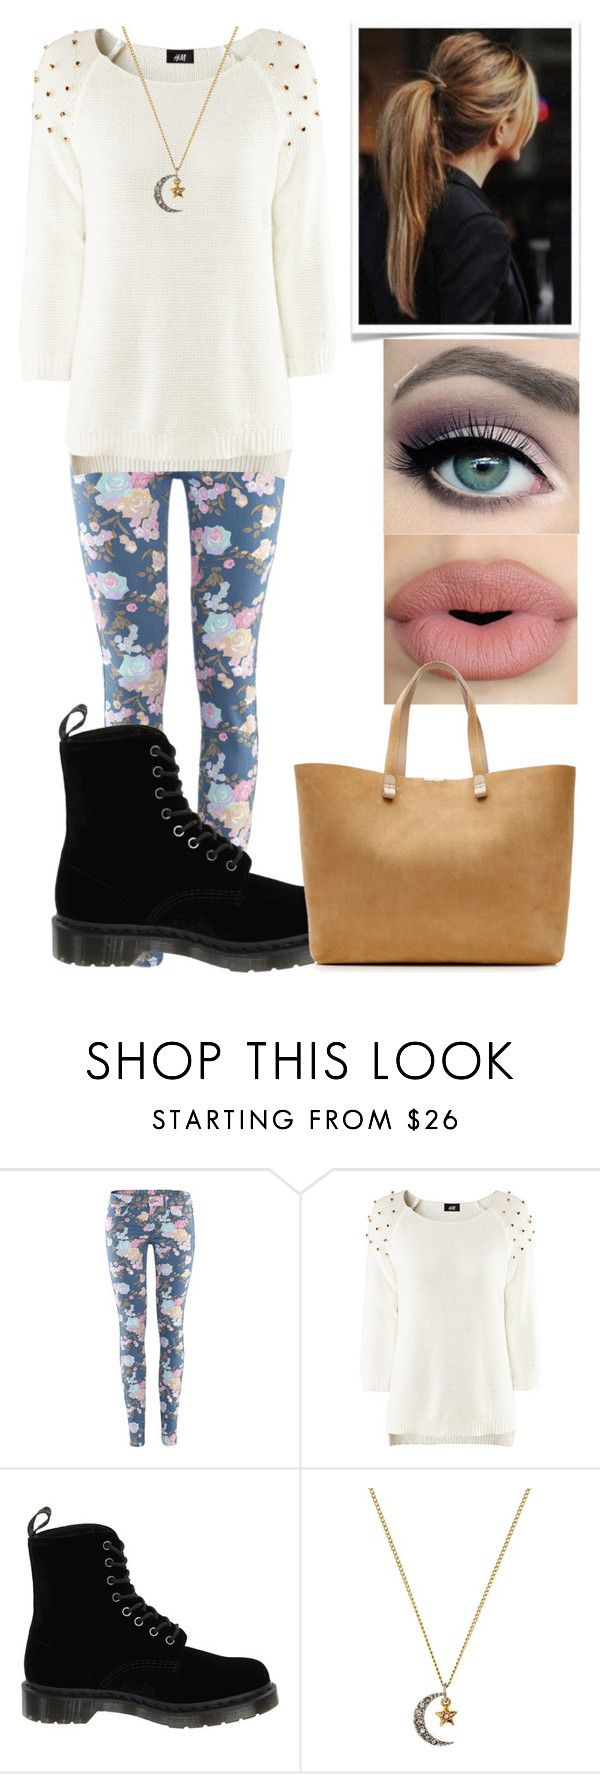 """Set #402"" by cry-baby-089 ❤ liked on Polyvore featuring H&M, Dr. Martens, Juicy Couture, Sephora Collection, tarte and Victoria Beckham"